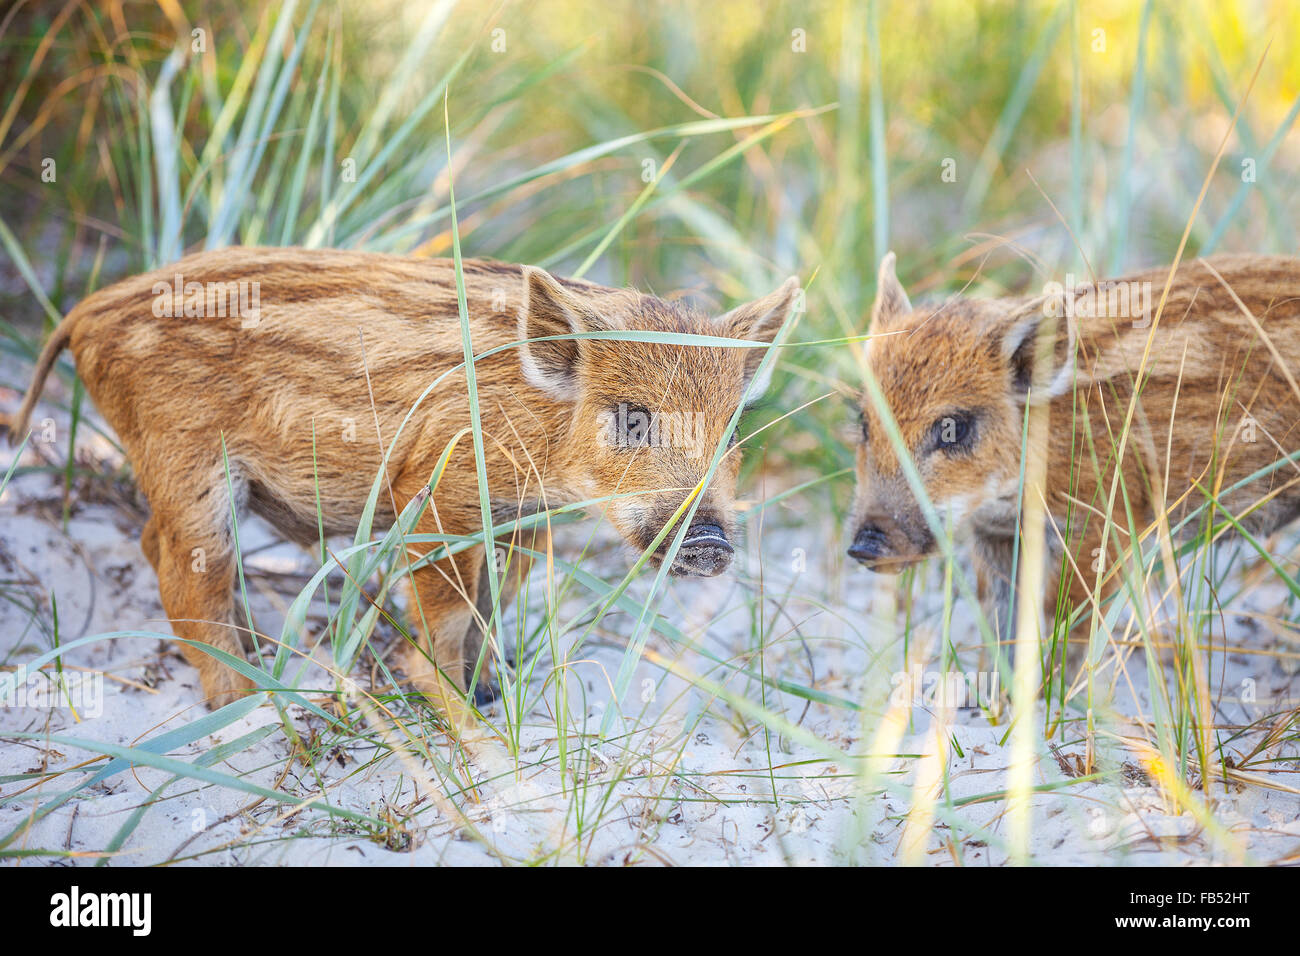 Wild piglets on a summer day - Stock Image